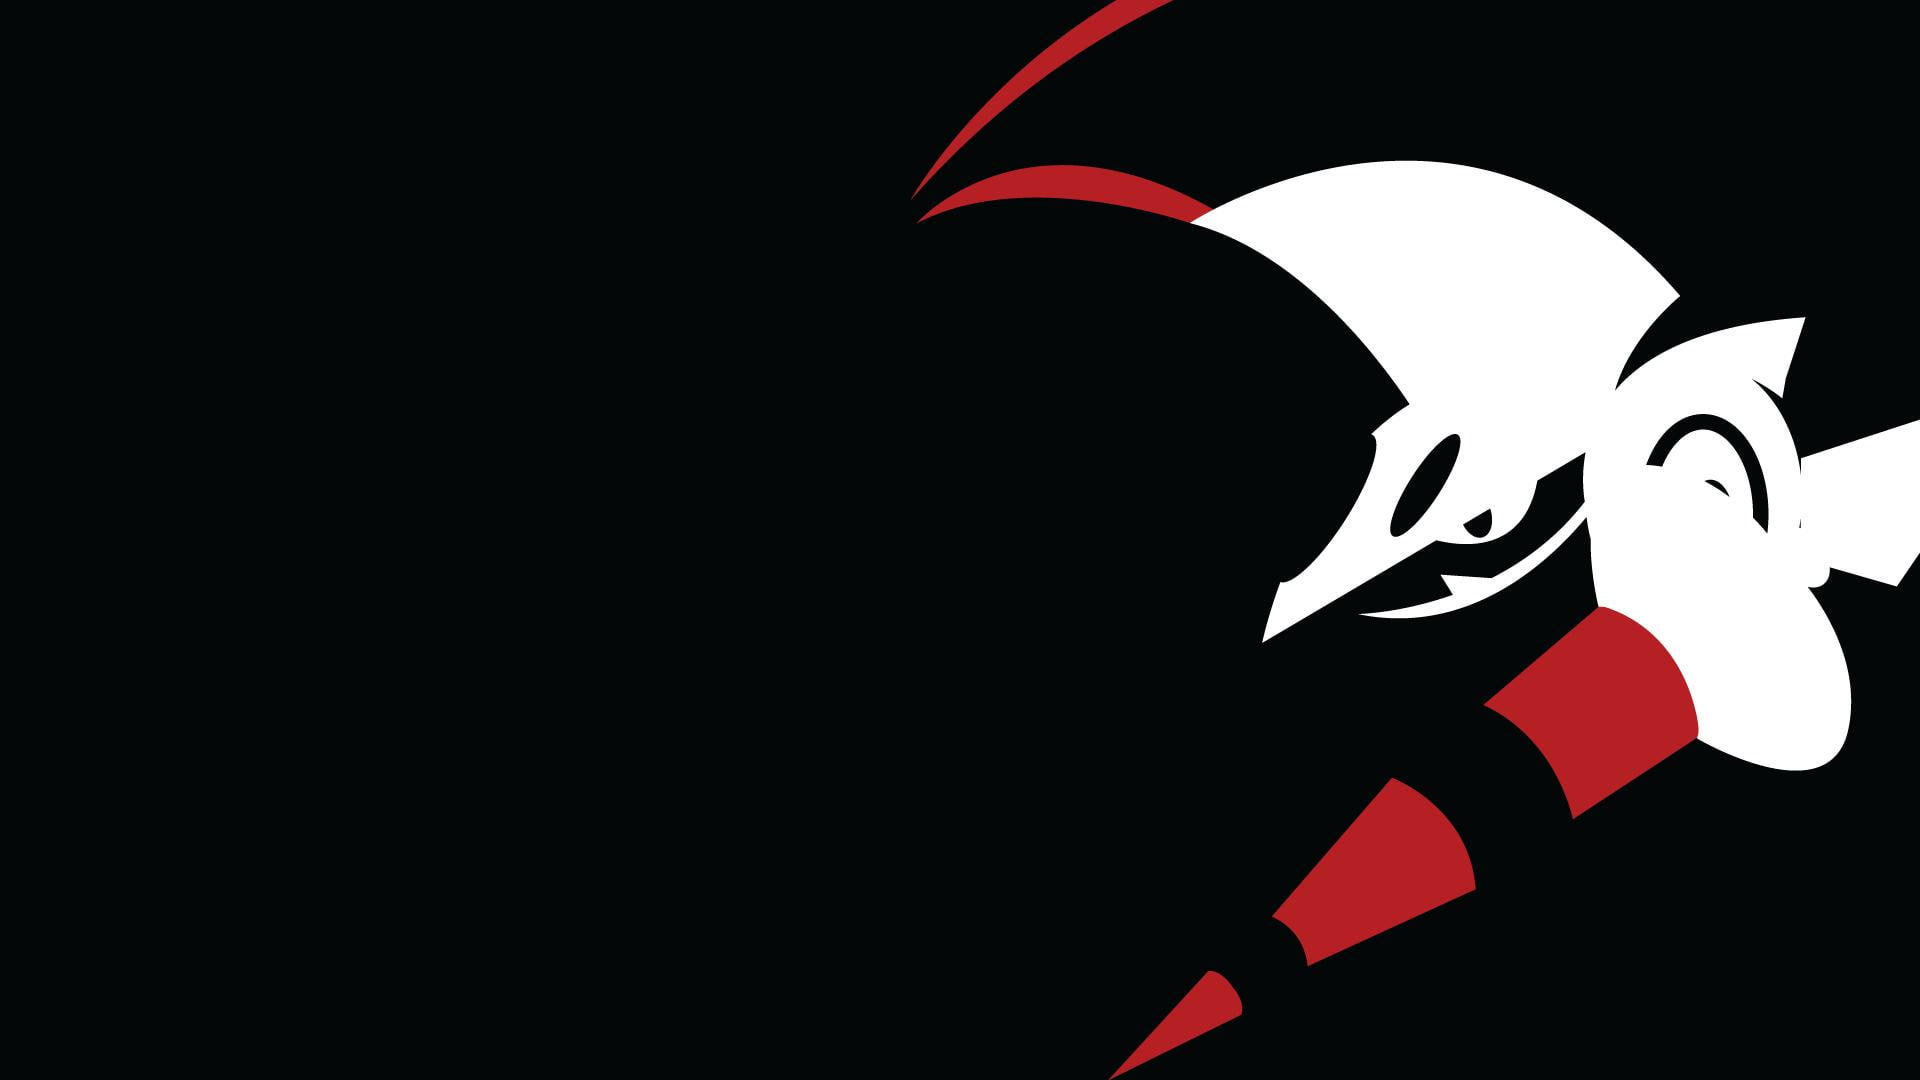 HD wallpaper Escavalier Minimalism Black Background red black 1920x1080